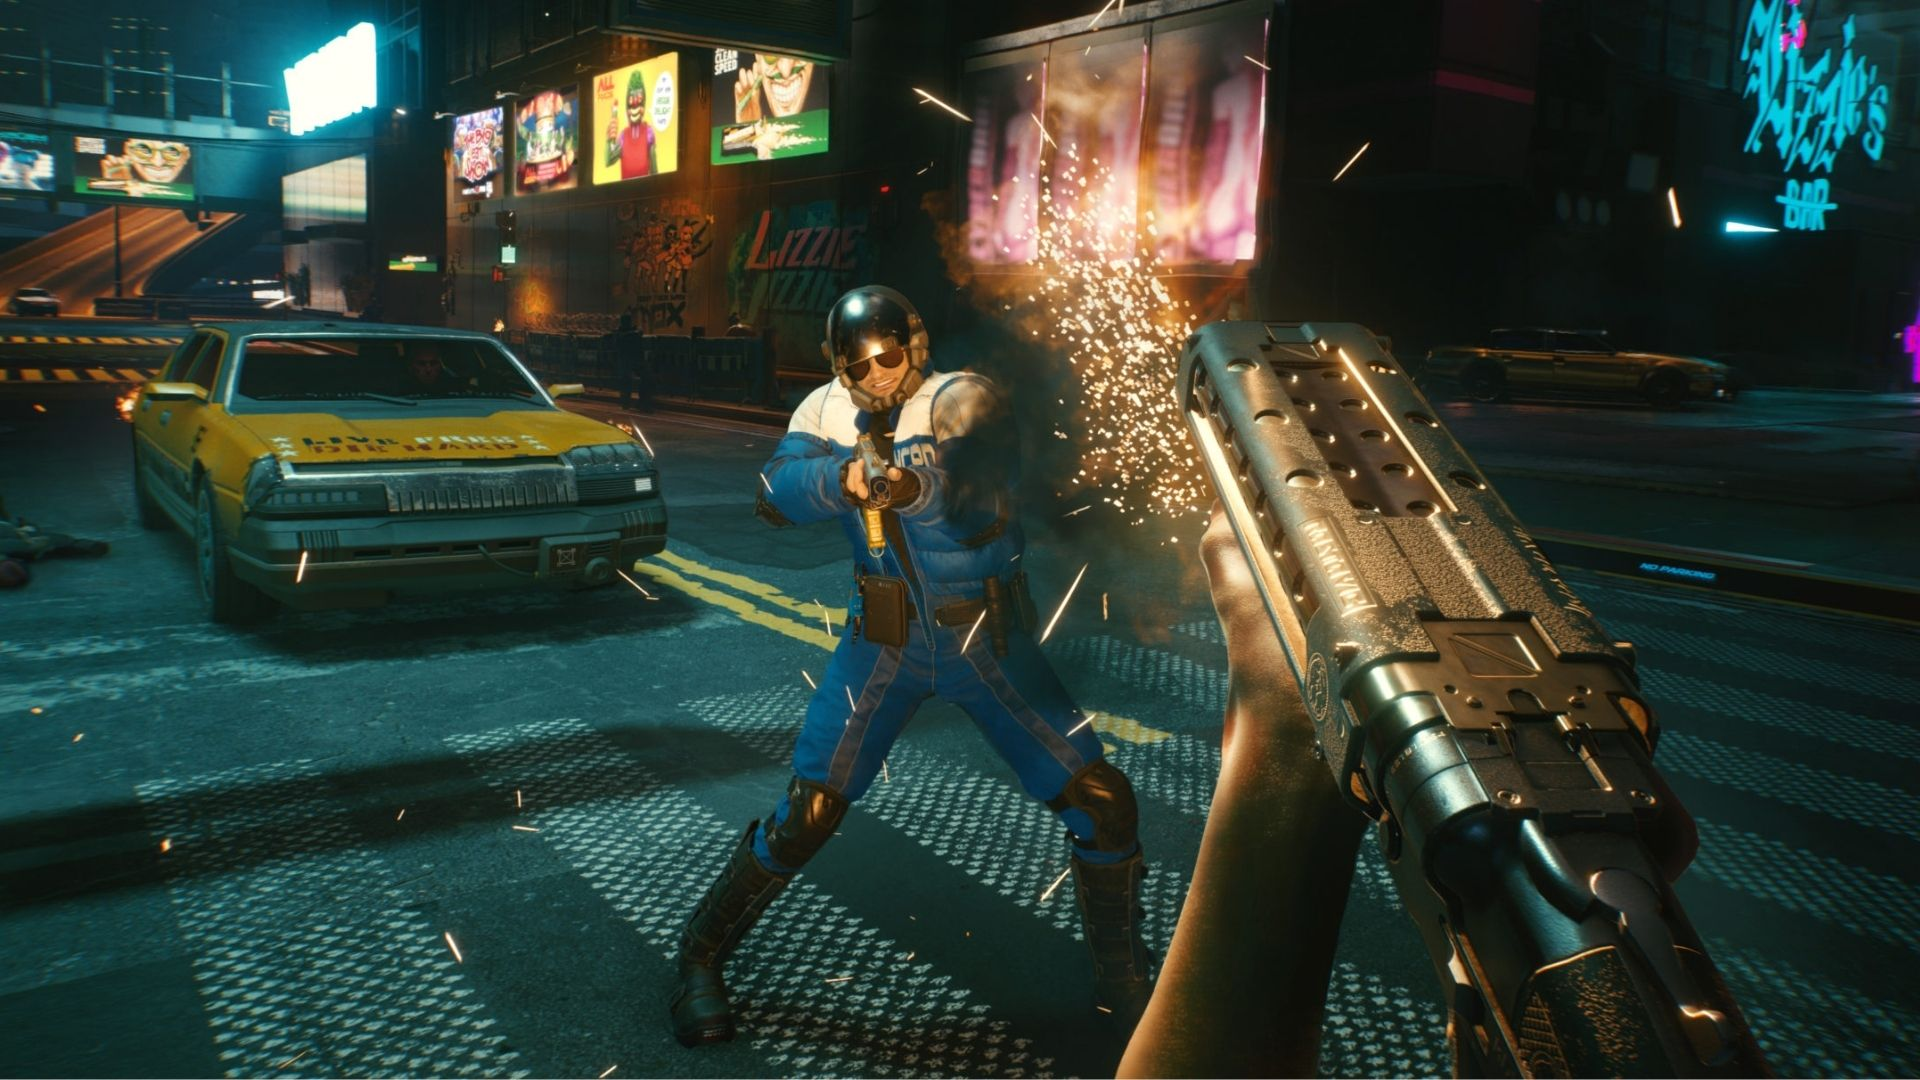 Cyberpunk 2077 Developer Offering Refunds to Fans Unhappy With Xbox One Performance